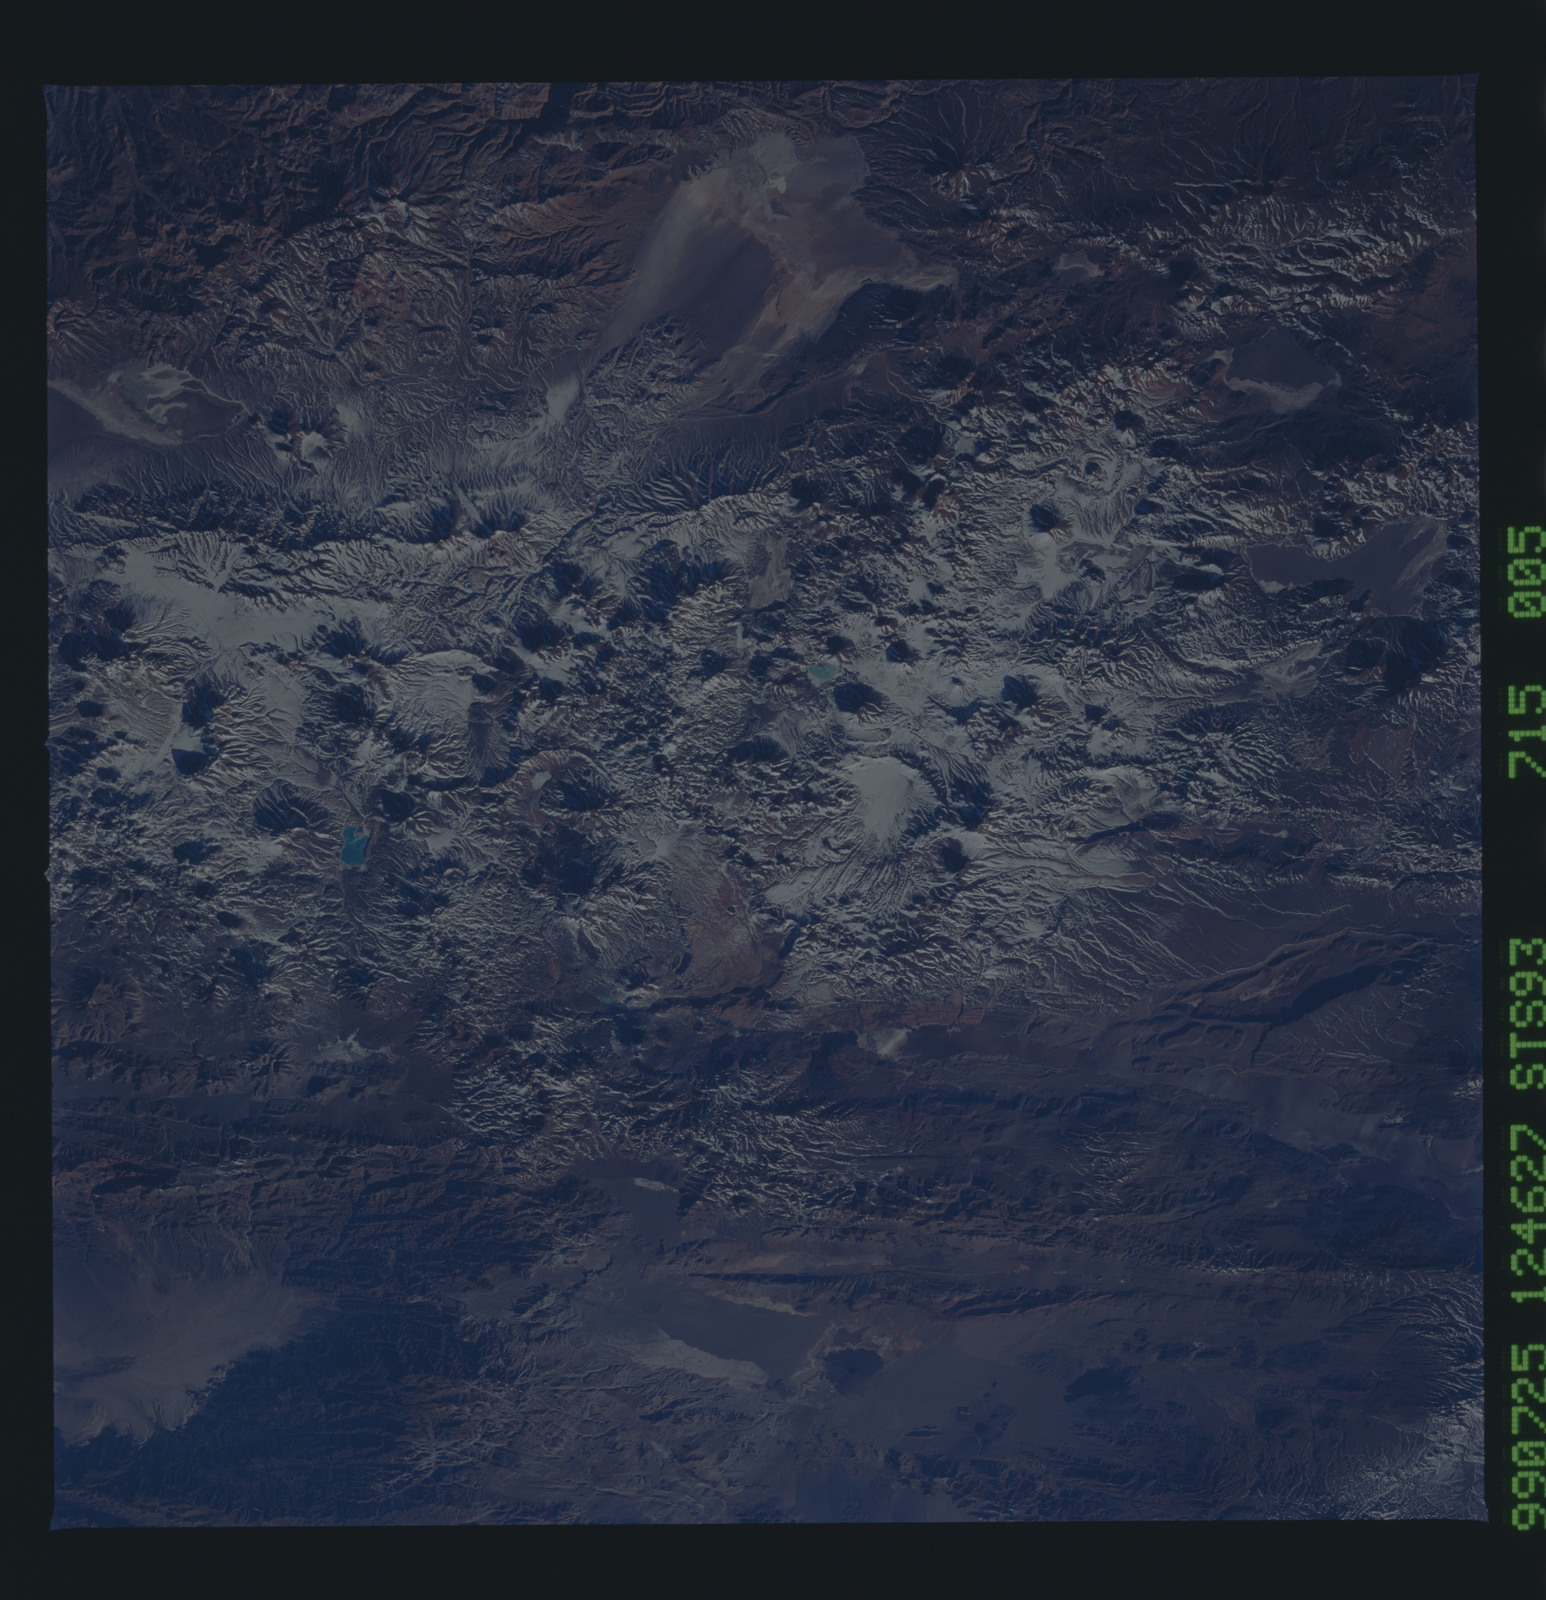 STS093-715-005 - STS-093 - Earth observations of the Andes Mts. taken from Columbia during STS-93 mission